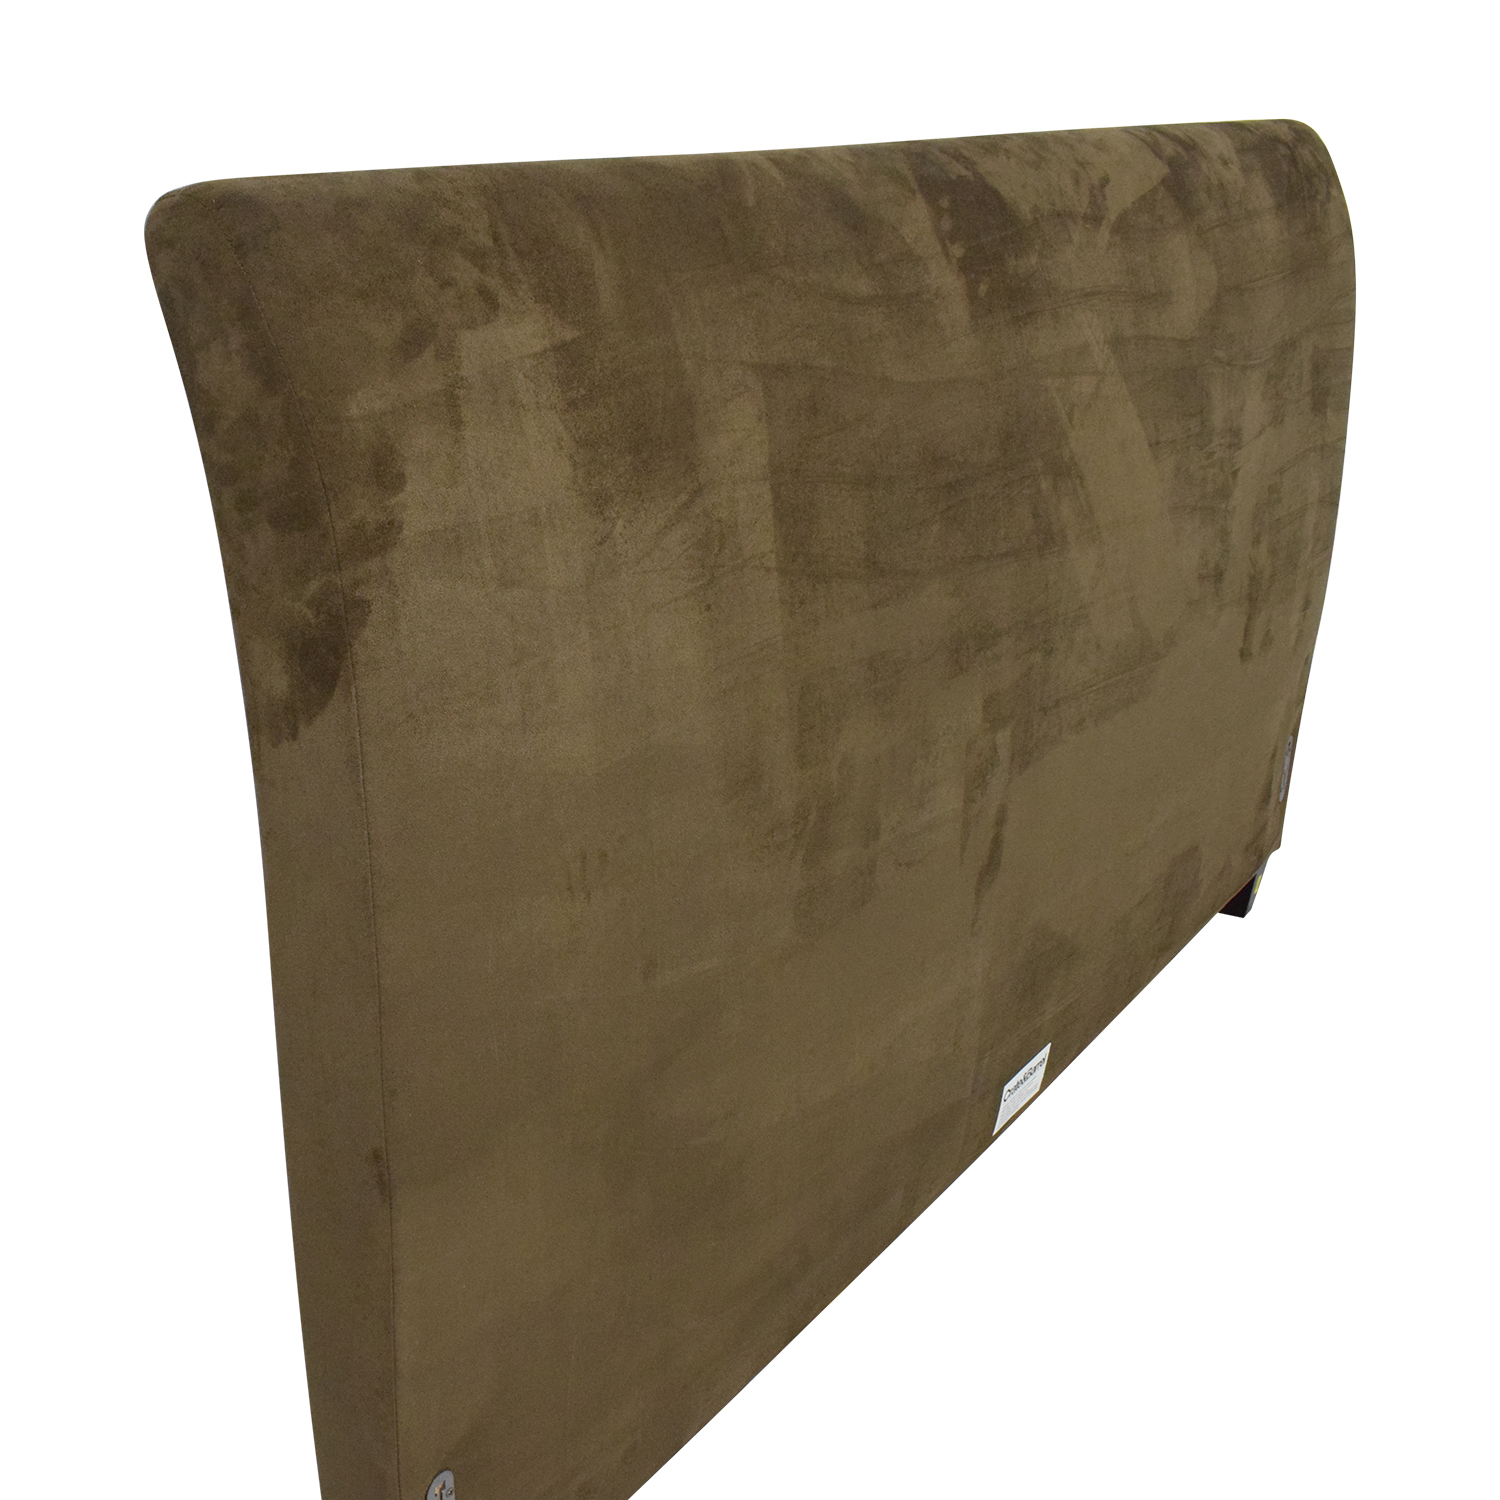 Crate & Barrel by Mitchell Gold + Bob WIlliams Ultrasuede King Fairmont Headboard / Beds